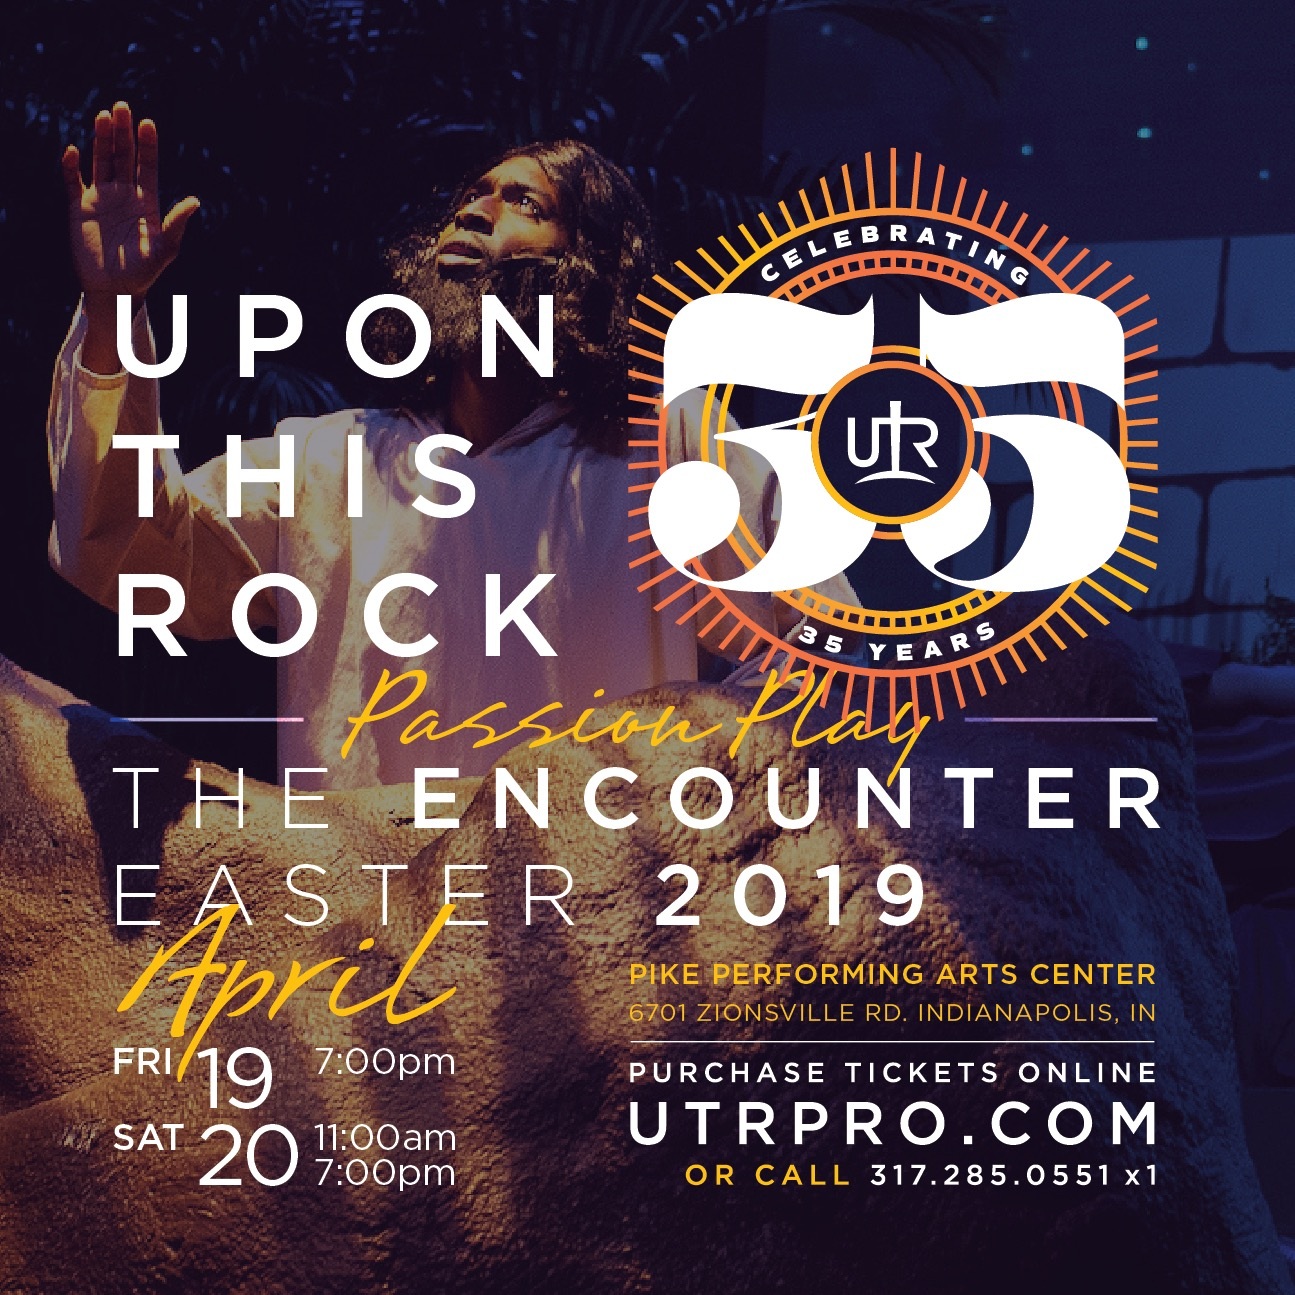 UPON THIS ROCK 2019: THE ENCOUNTER Flyer